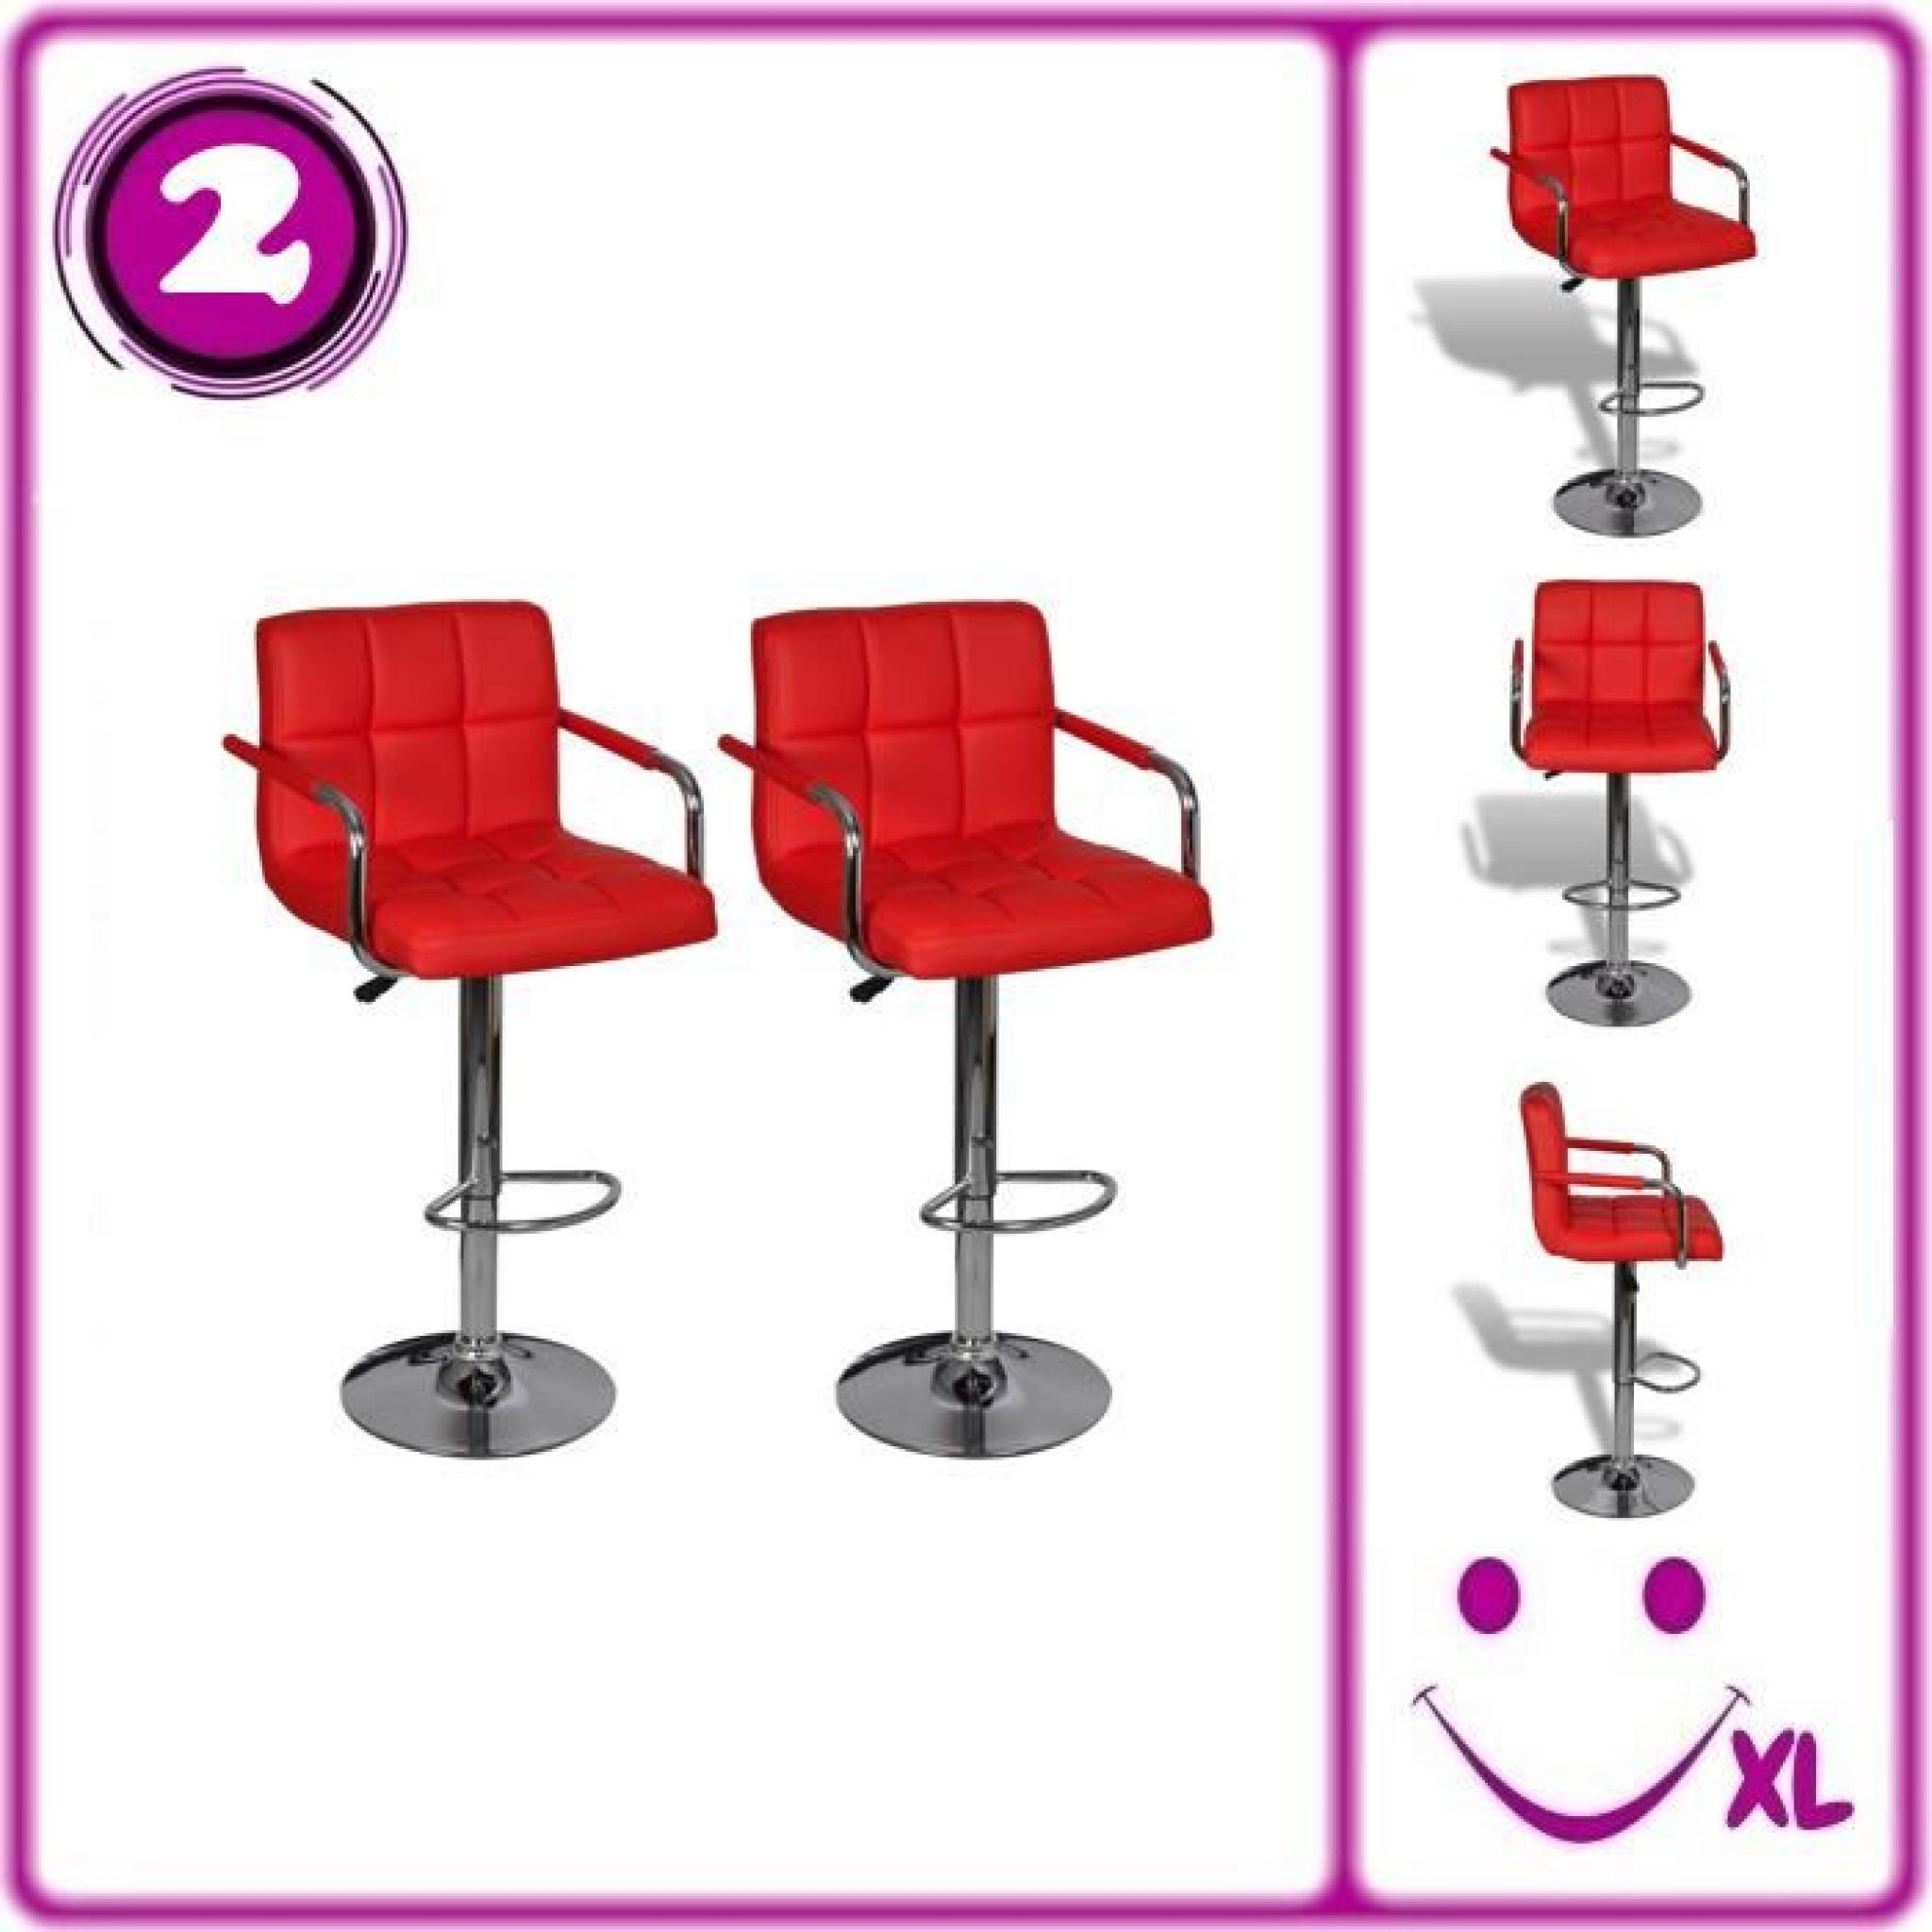 lot de 2 tabourets de bar rouges avec accoudoirs achat vente tabouret de bar pas cher. Black Bedroom Furniture Sets. Home Design Ideas